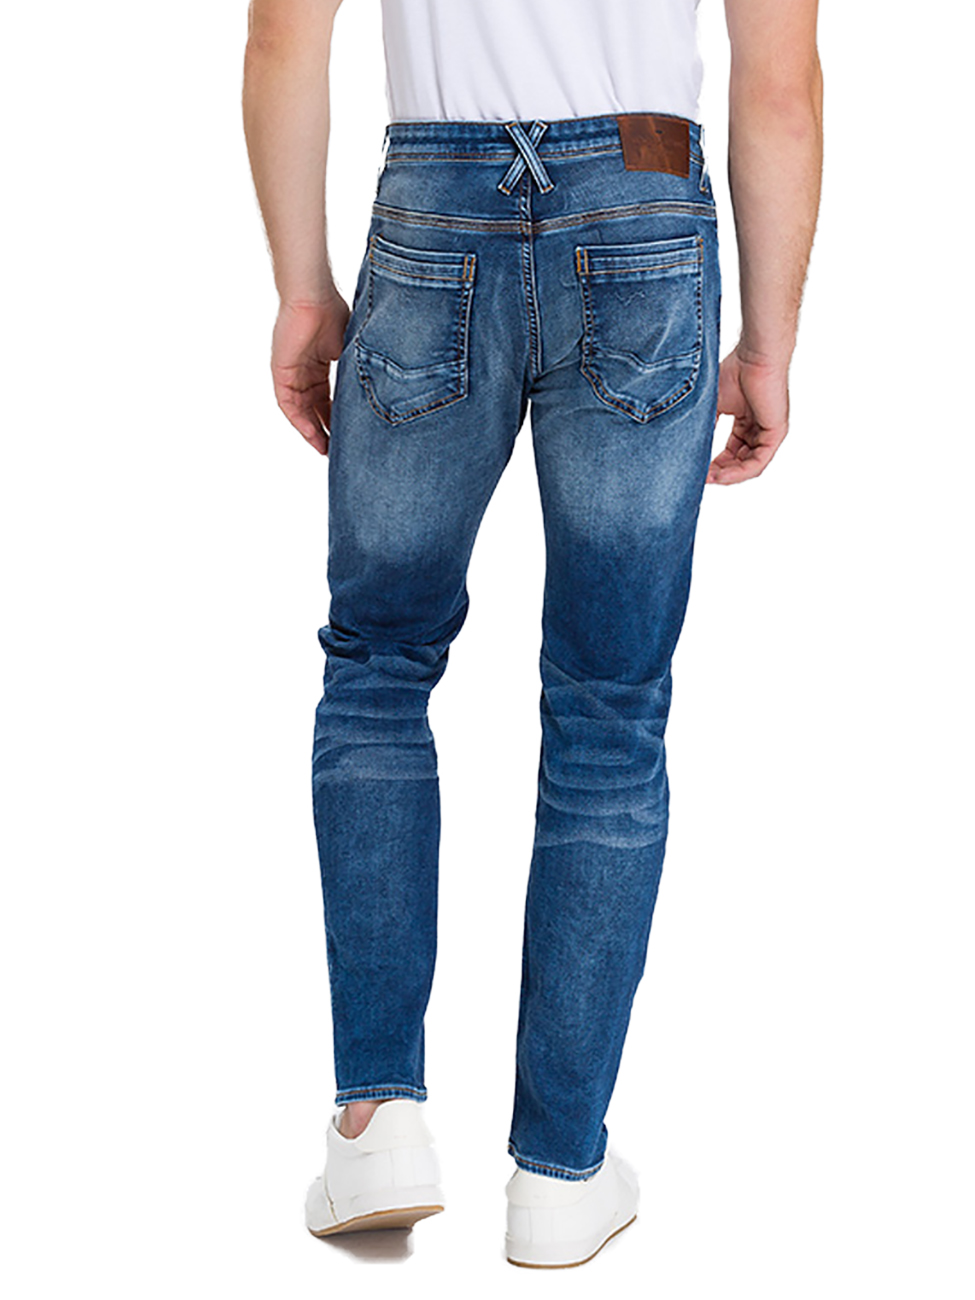 cross-jeans-herren-jeans-jimi-slim-tapered-fit-blau-dark-mid-blue